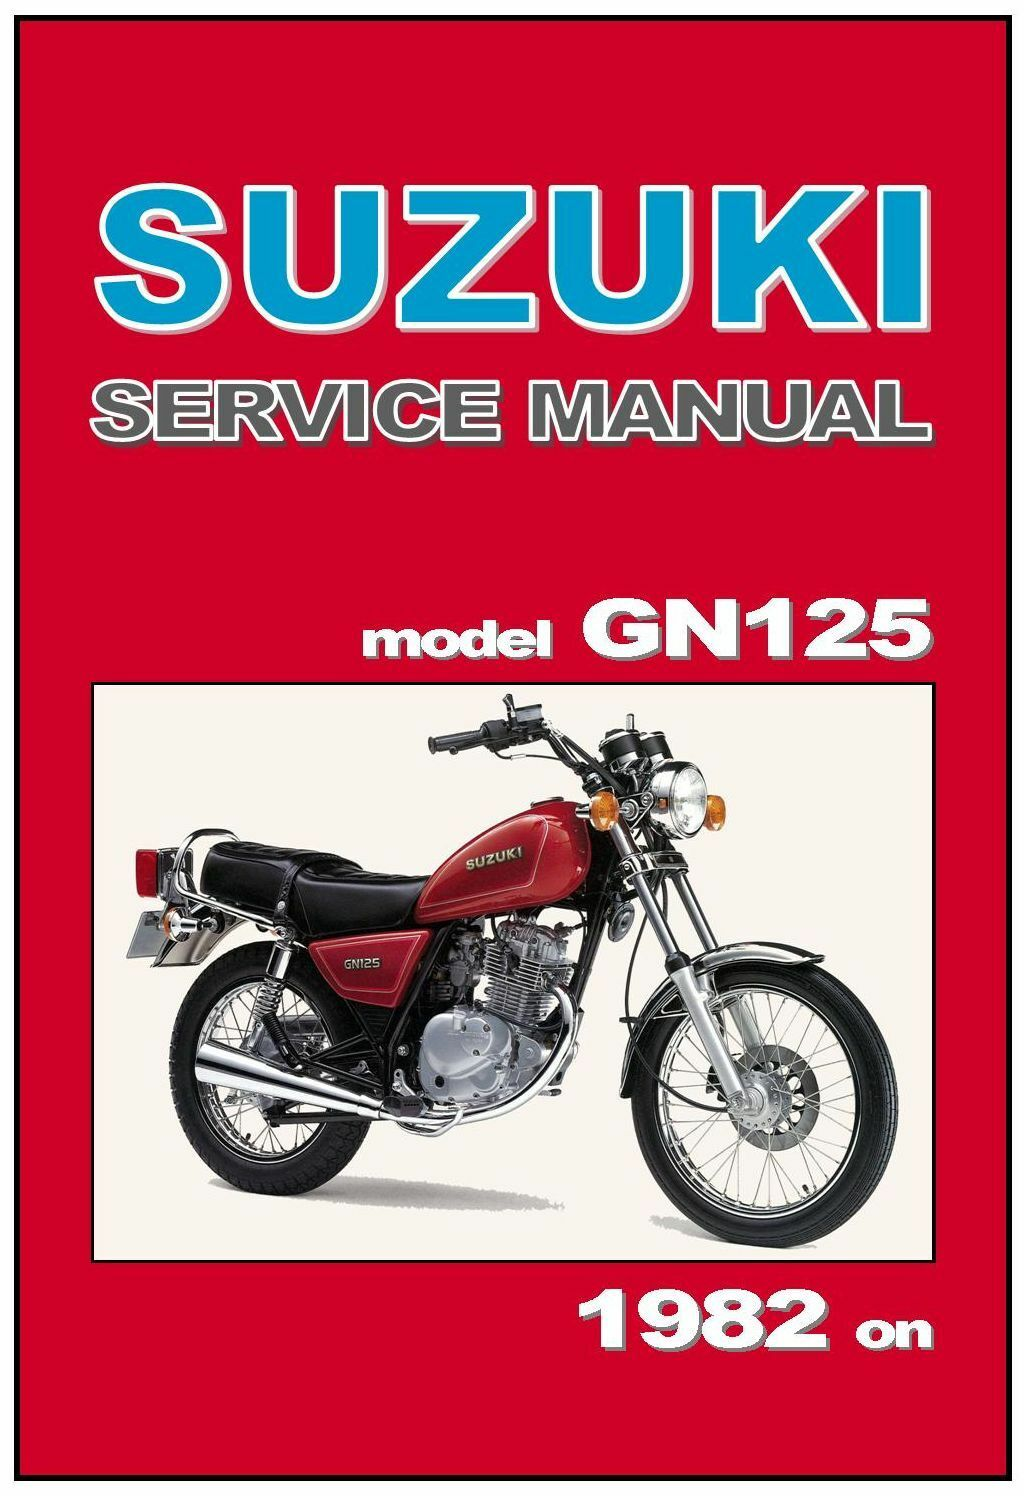 suzuki workshop manual gn125 1982 1983 1984 1985 1986 1987